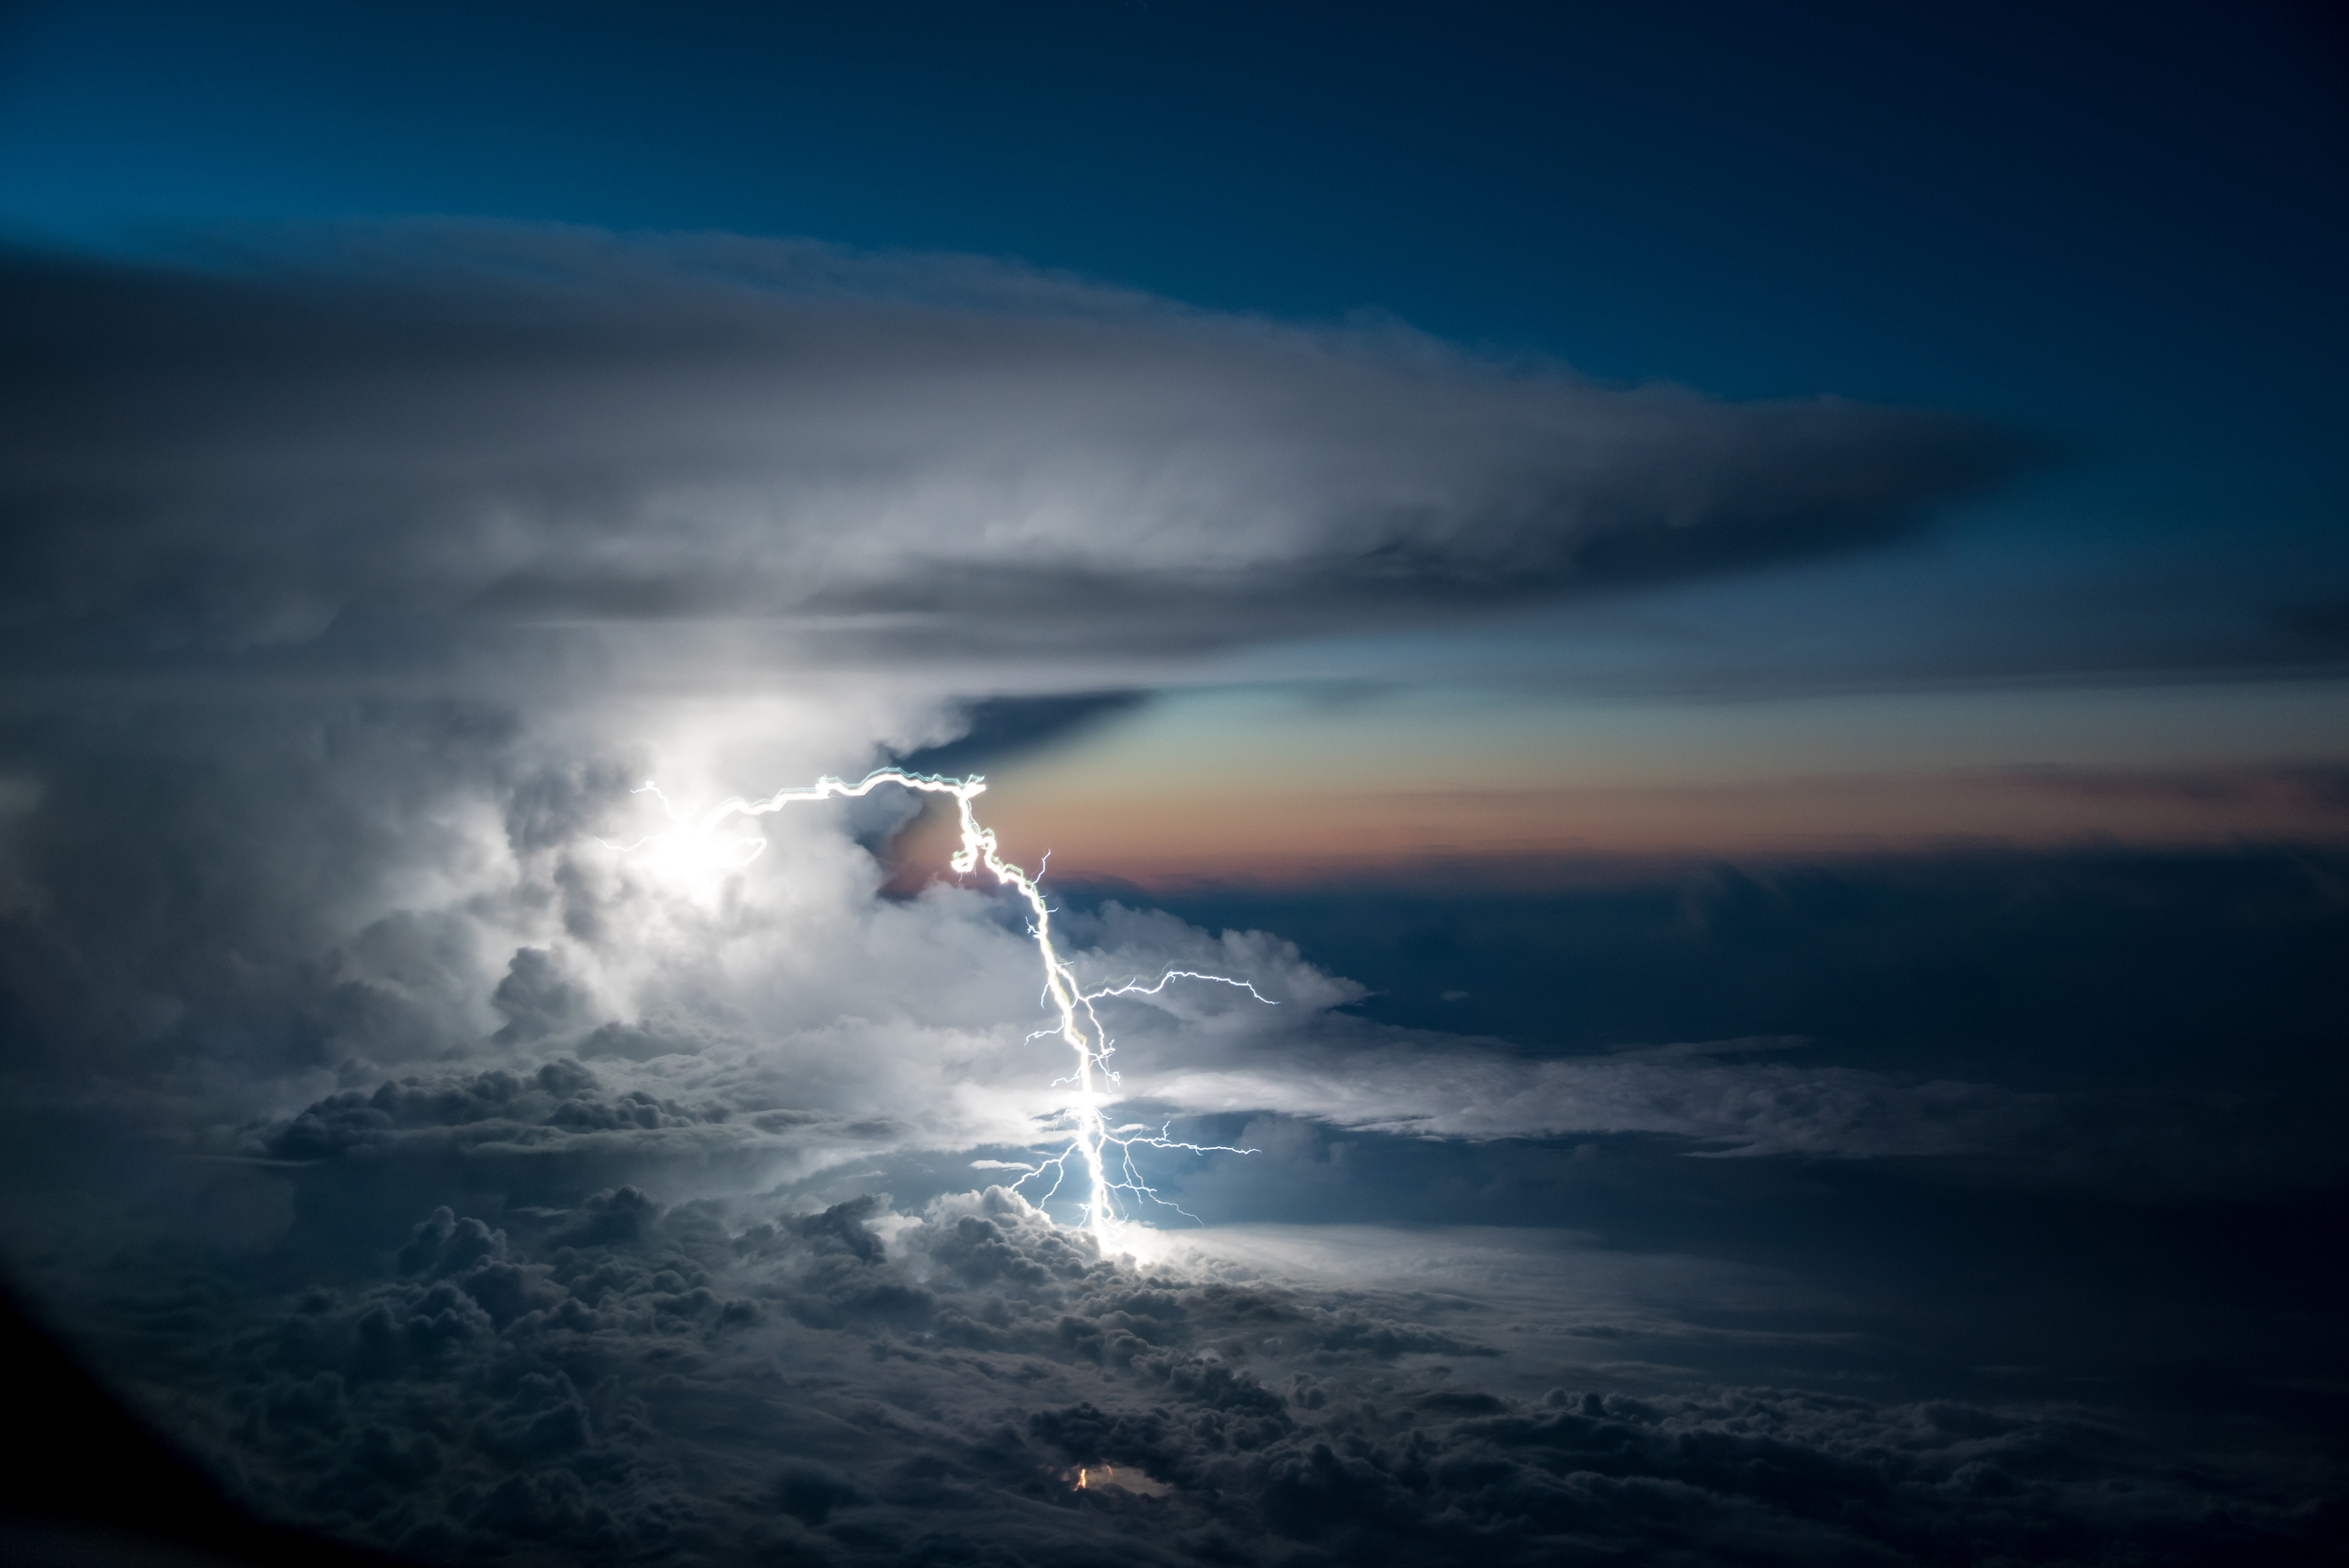 A storm developing over the Ecuadorean Amazonia.